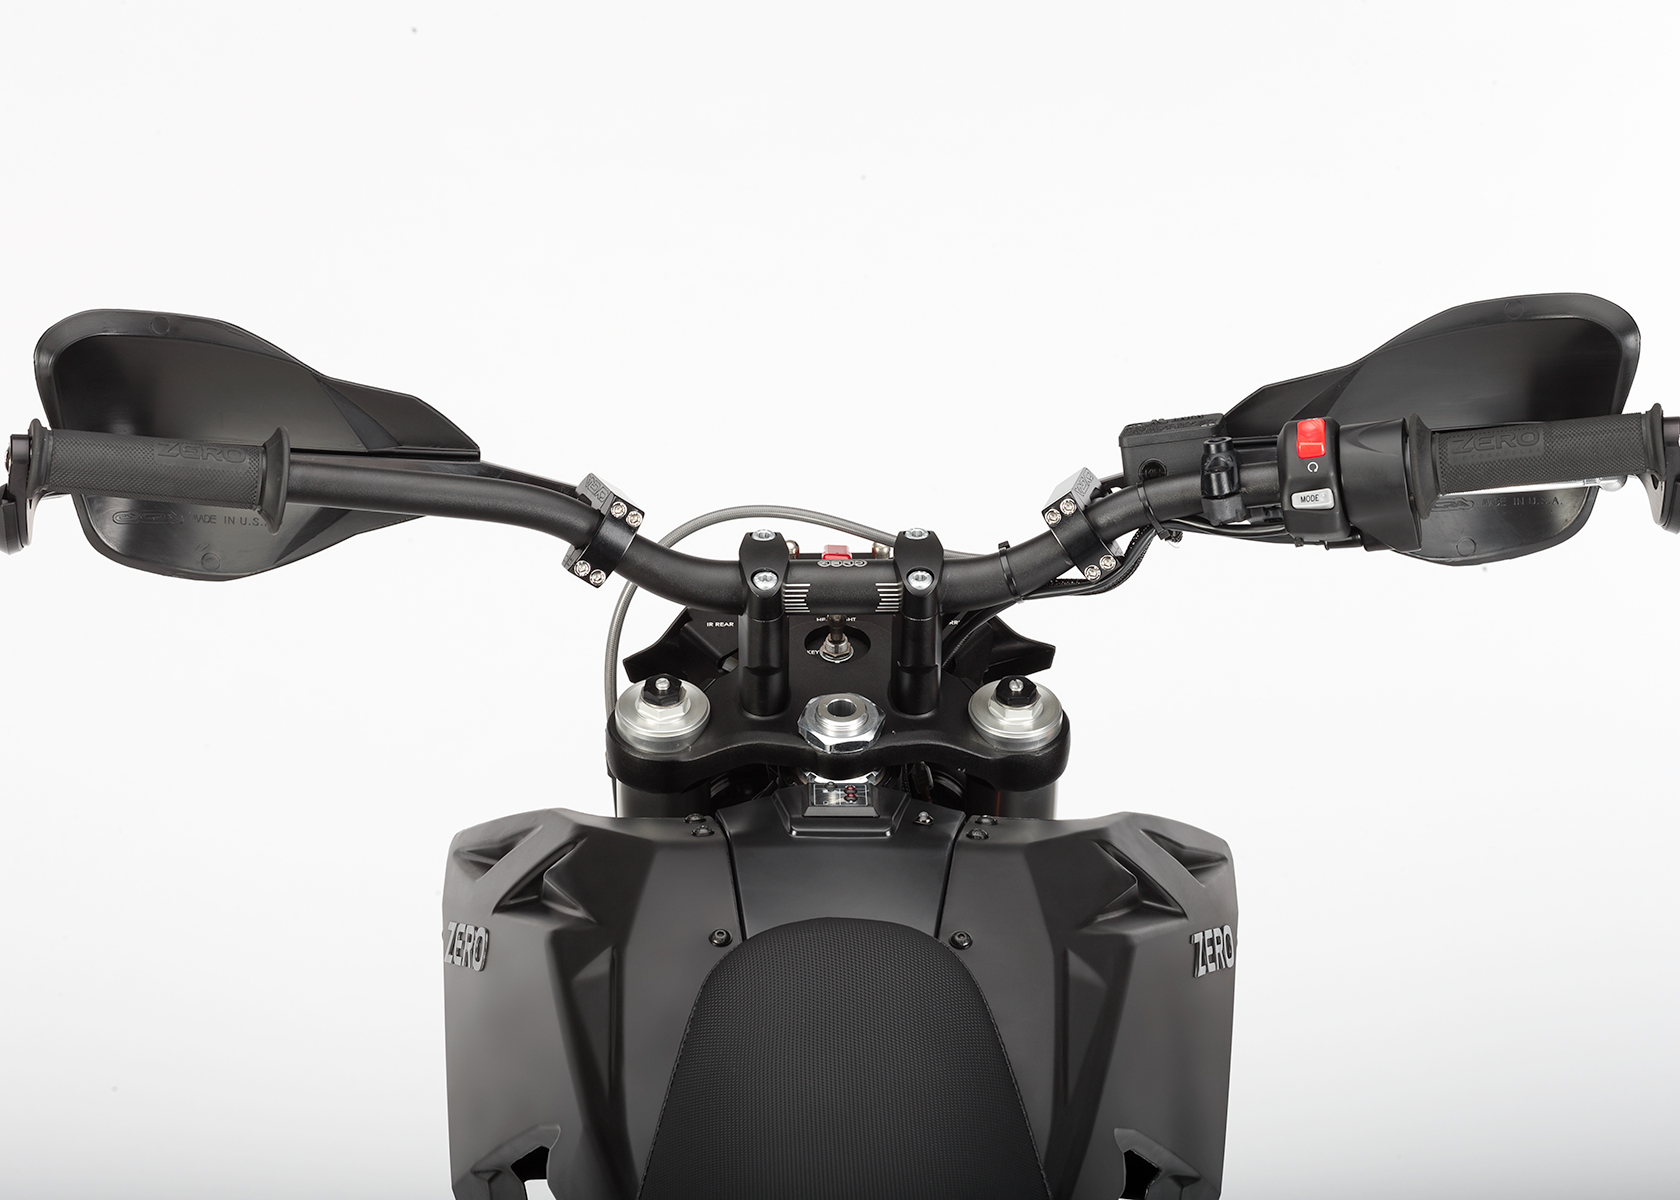 2015 Zero Police Electric Motorcycle: Dash